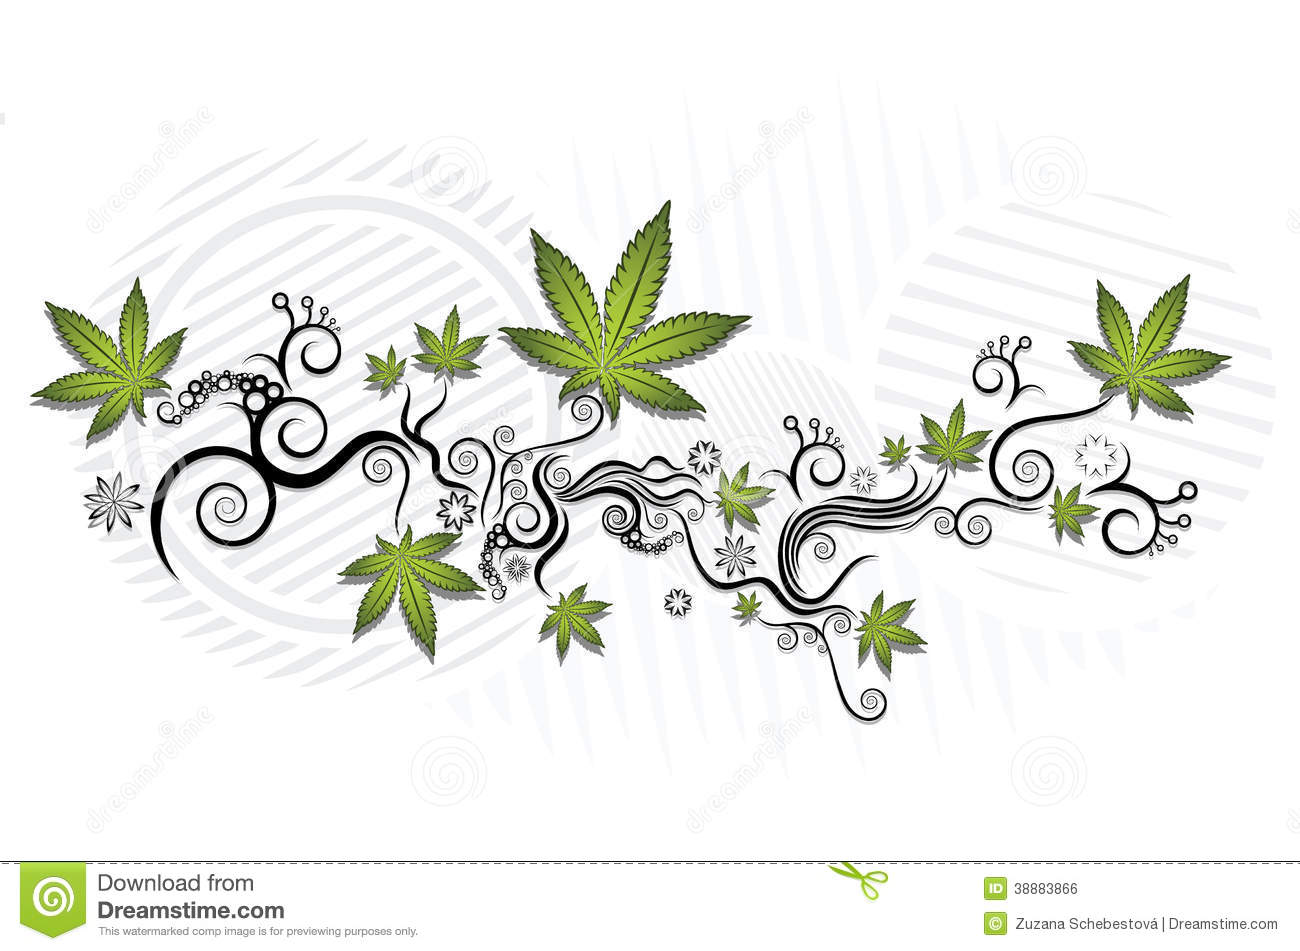 Ganja Stock Illustrations.